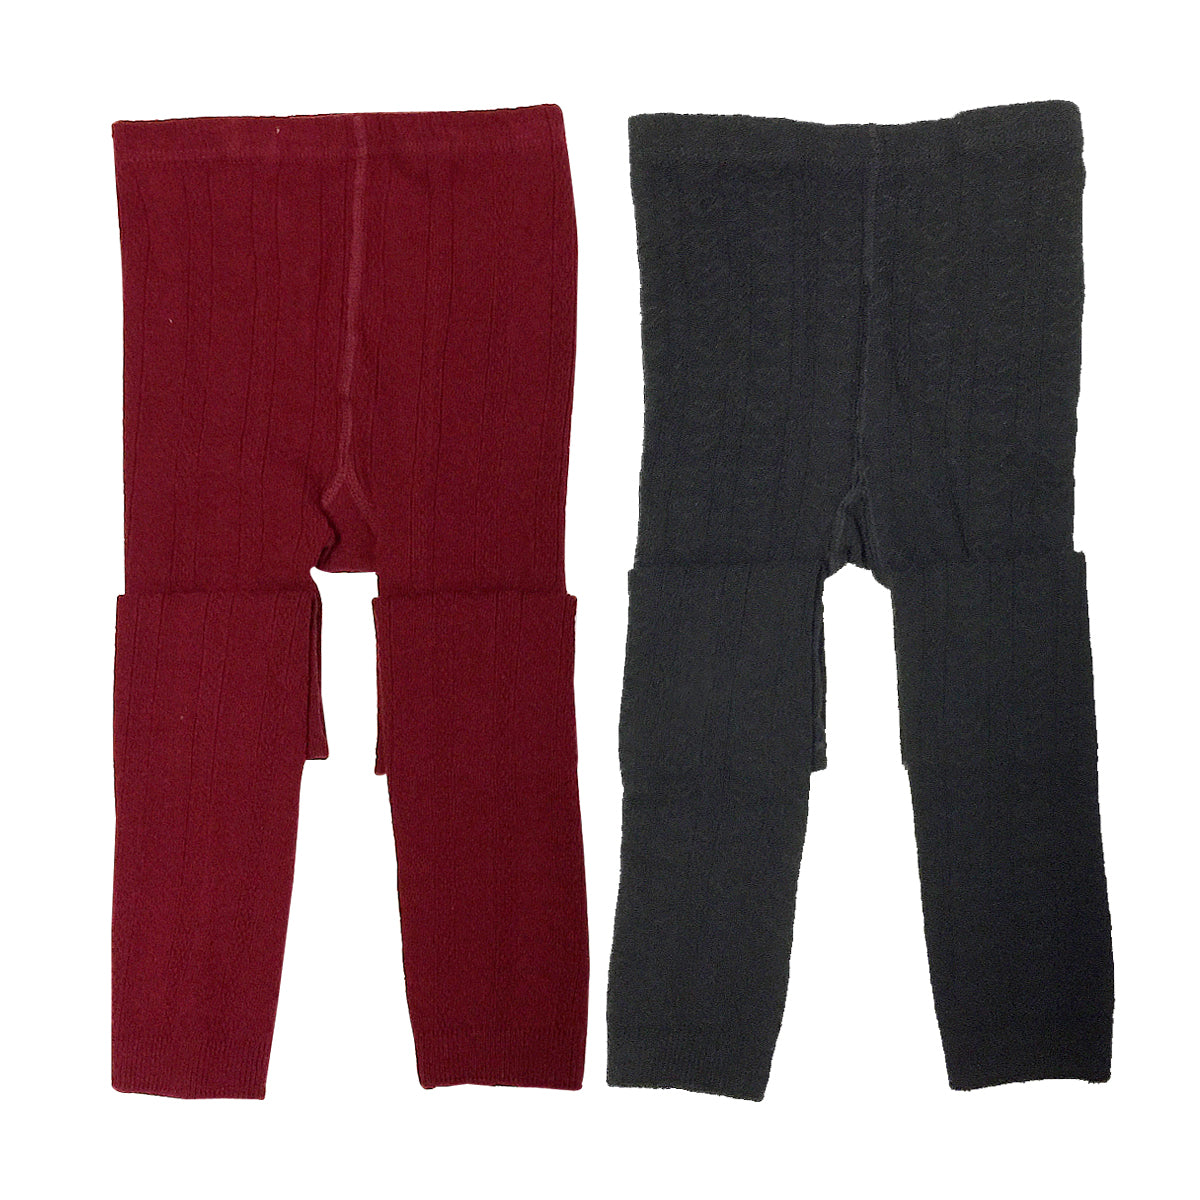 Wrapables Burgundy and Black Cotton Heart Knit Leggings for Toddlers (Set of 2)